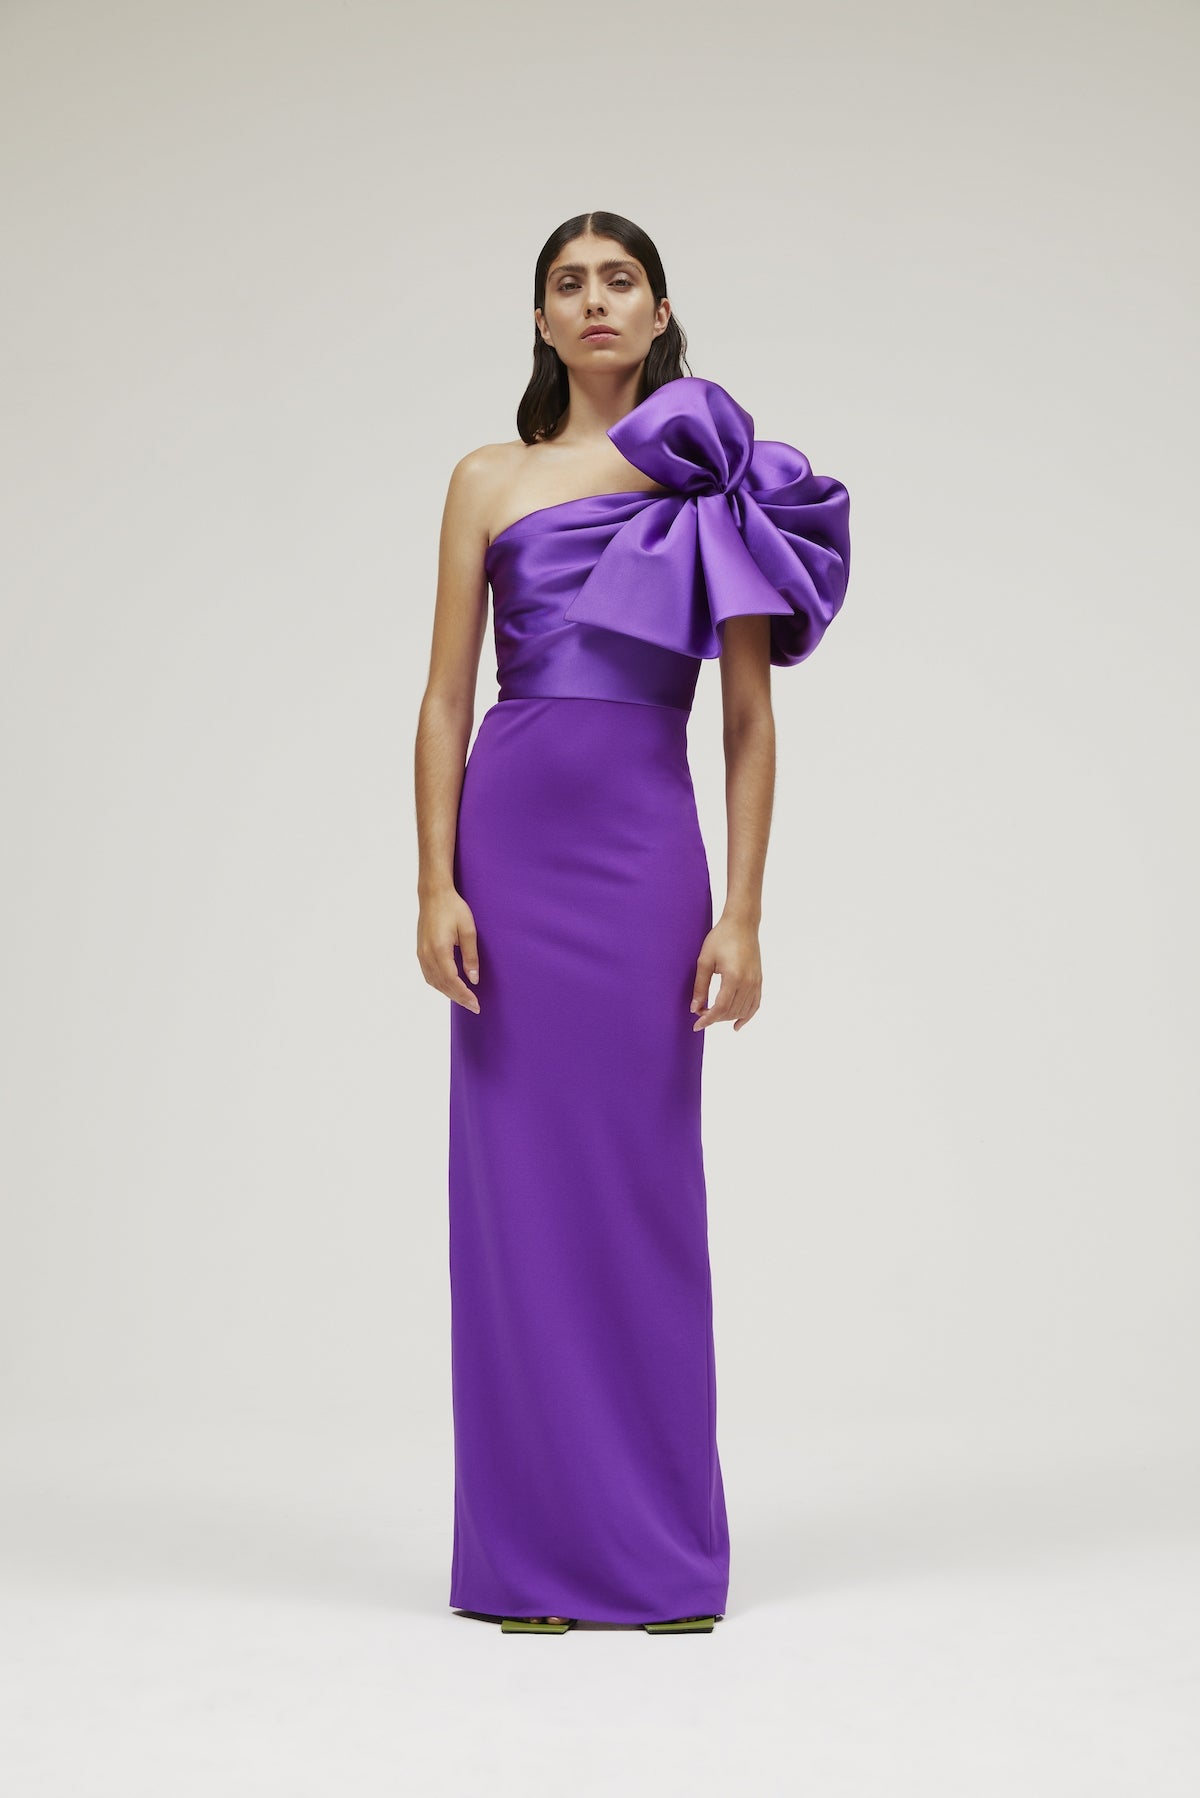 The Iyana Dress in Ultra Purple